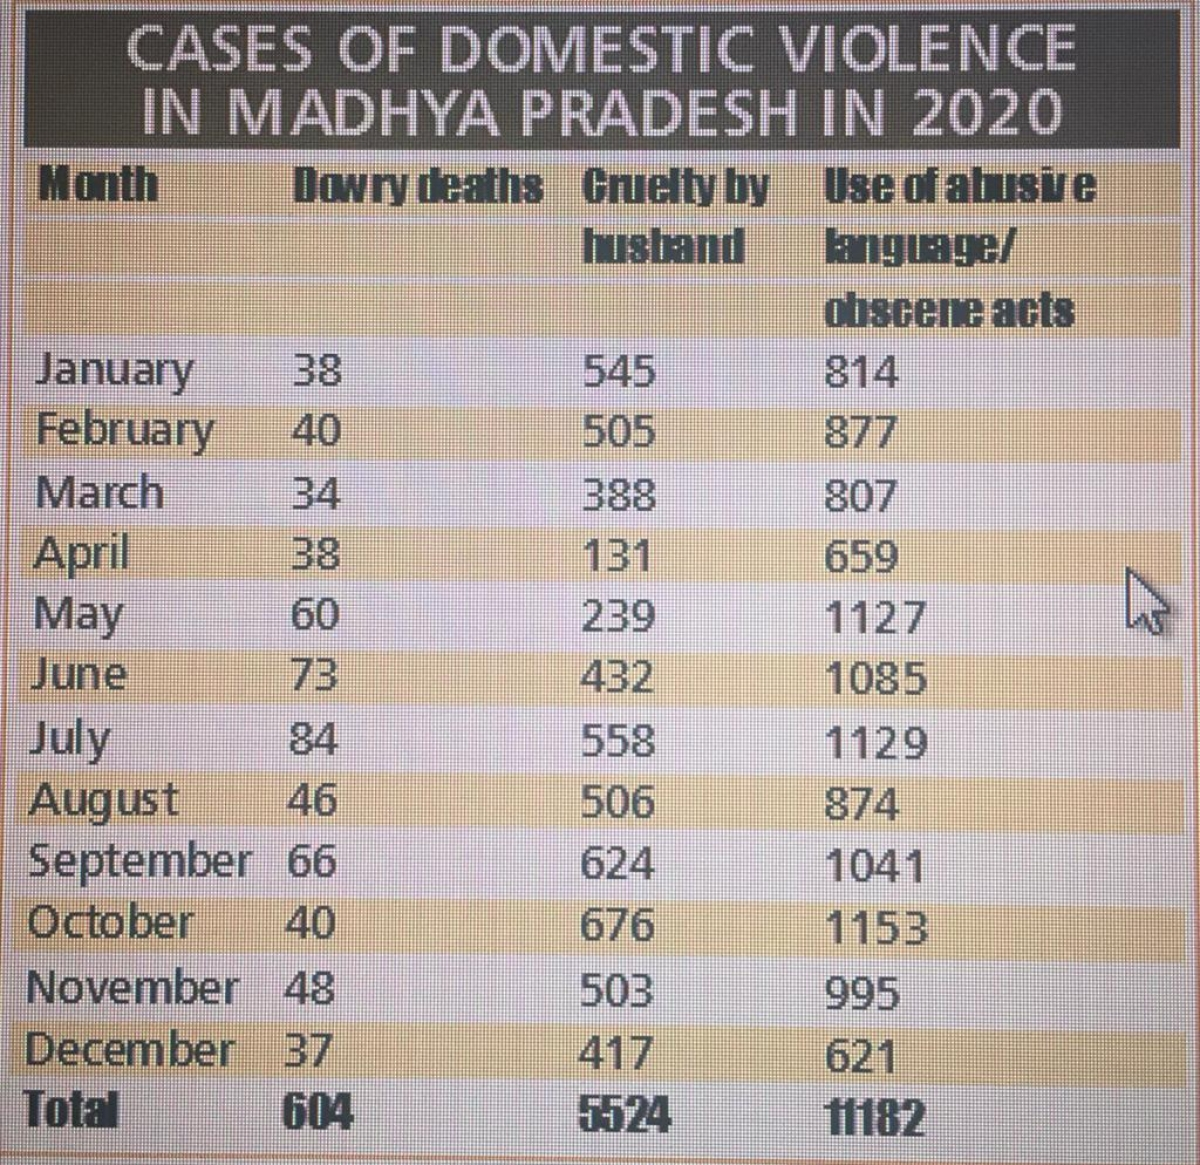 Spurt in domestic violence in Madhya Pradesh during Covid-19 pandemic